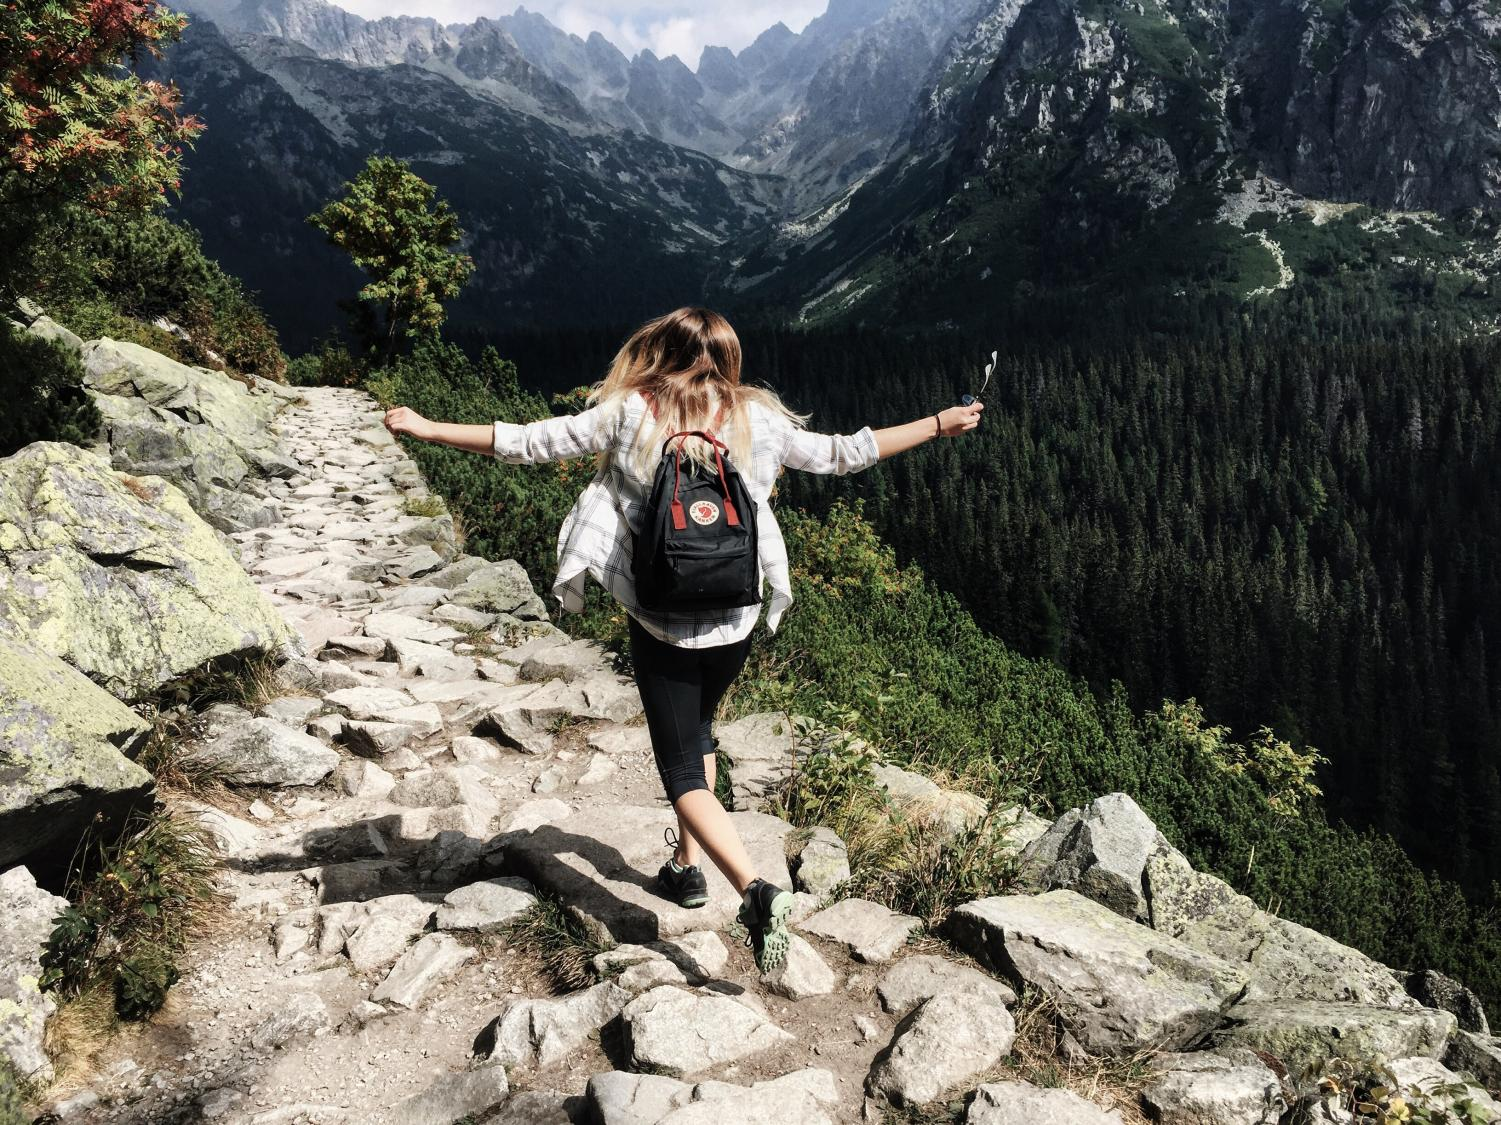 Hiking is a fun and opening activity to do when you have any free time.